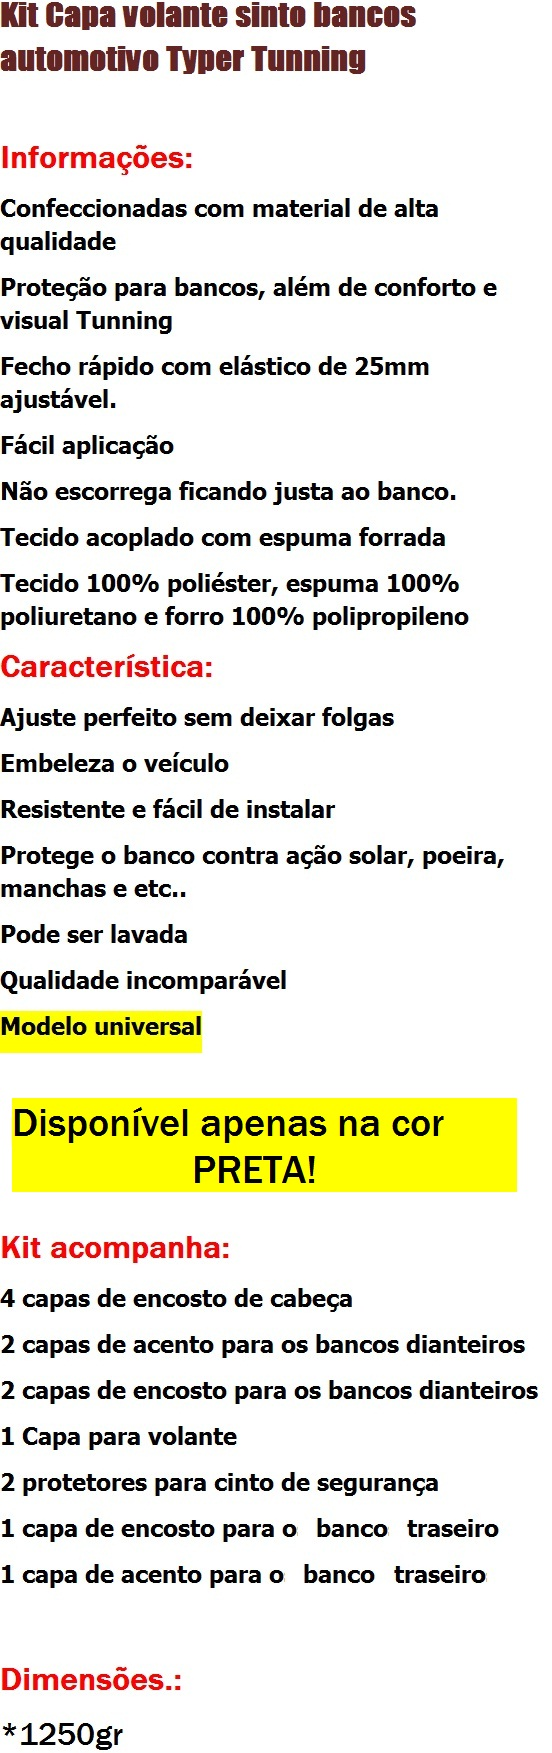 http://abmidia.dominiotemporario.com/fotos%20e%20an%C3%BAncios%202011/kit%20capa%20automotiva/descricao.png